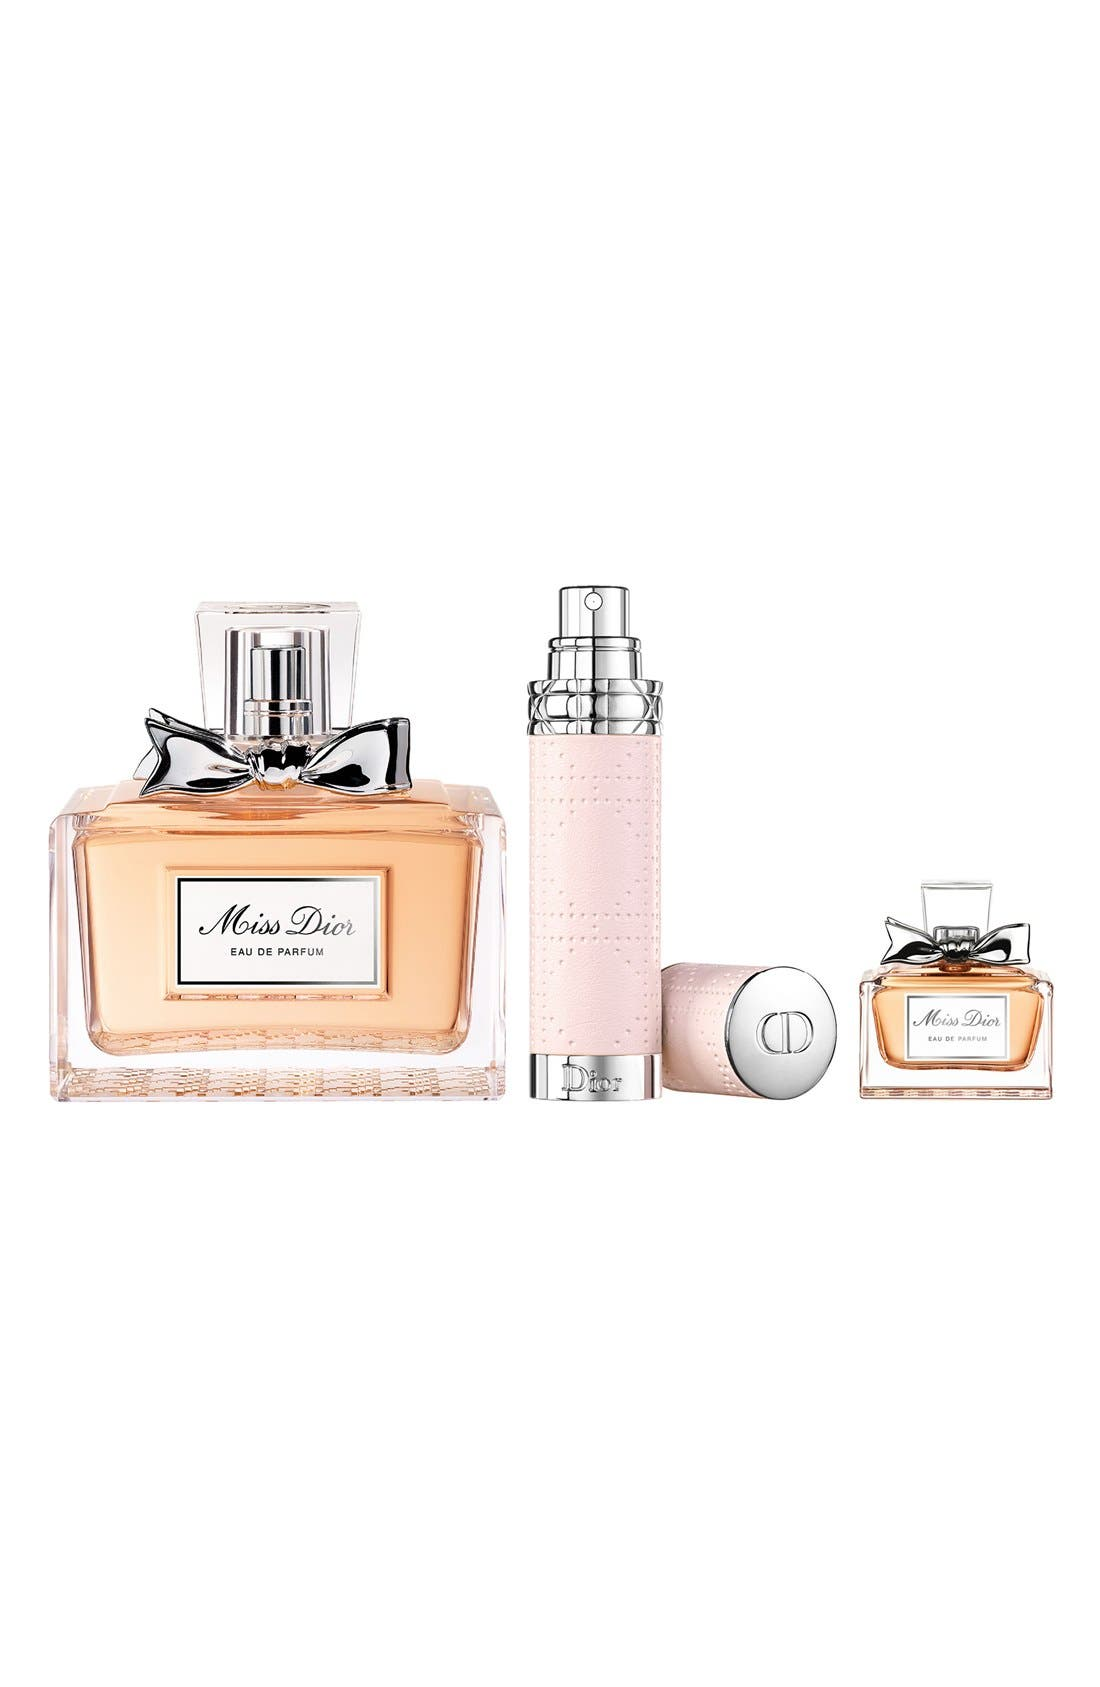 'Miss Dior' Eau de Parfum Deluxe Set,                             Alternate thumbnail 2, color,                             000